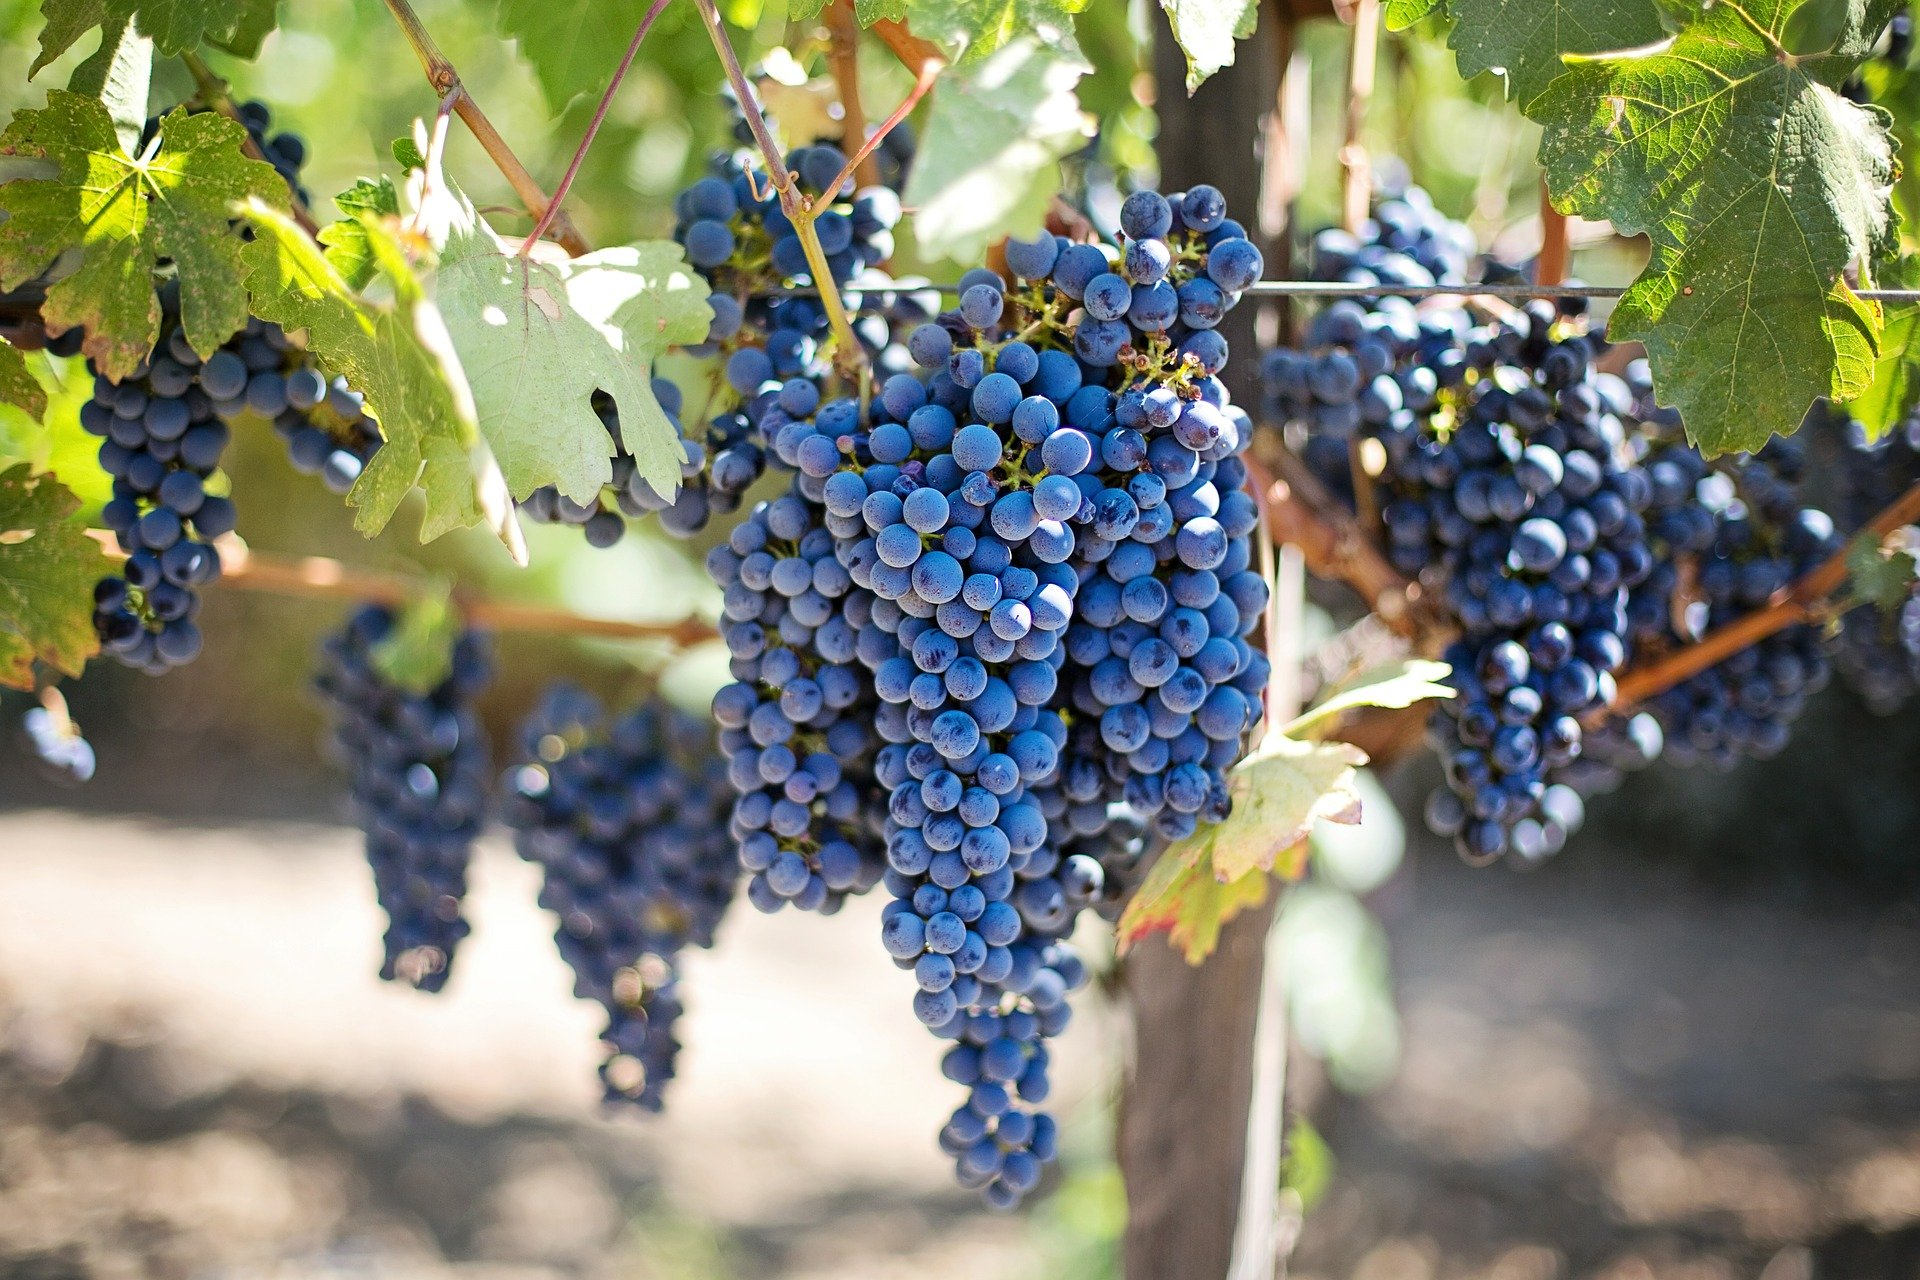 Grapes on the vine, Napa Valley, CA